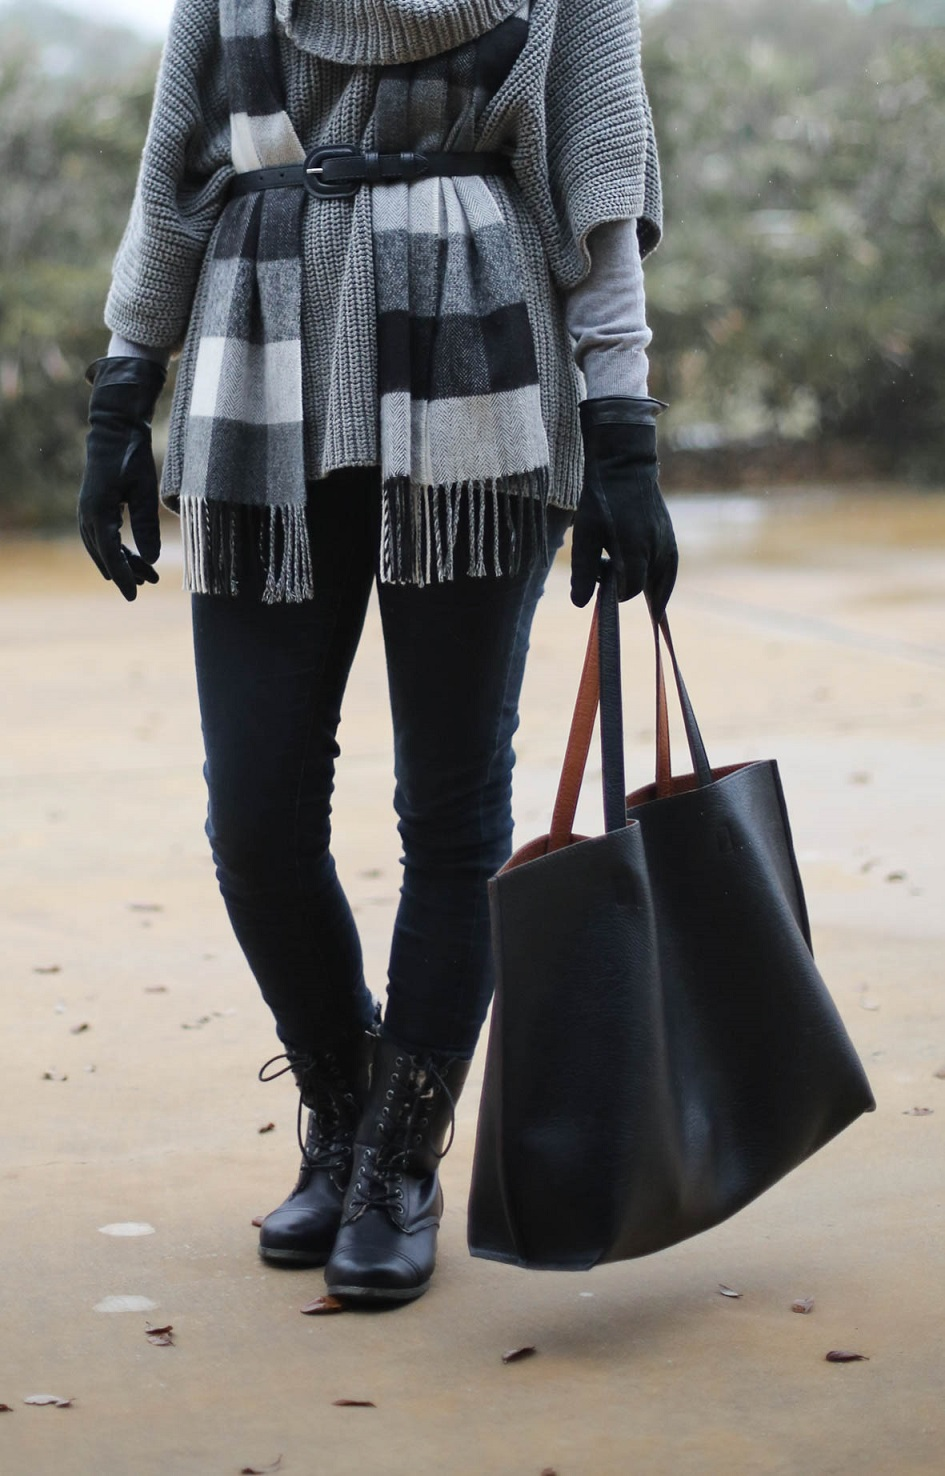 black and grey outfit, austin style blog, winter outfit ideas, nordstrom reversible tote bag, austin texas style blogger, austin fashion blogger, austin texas fashion blog